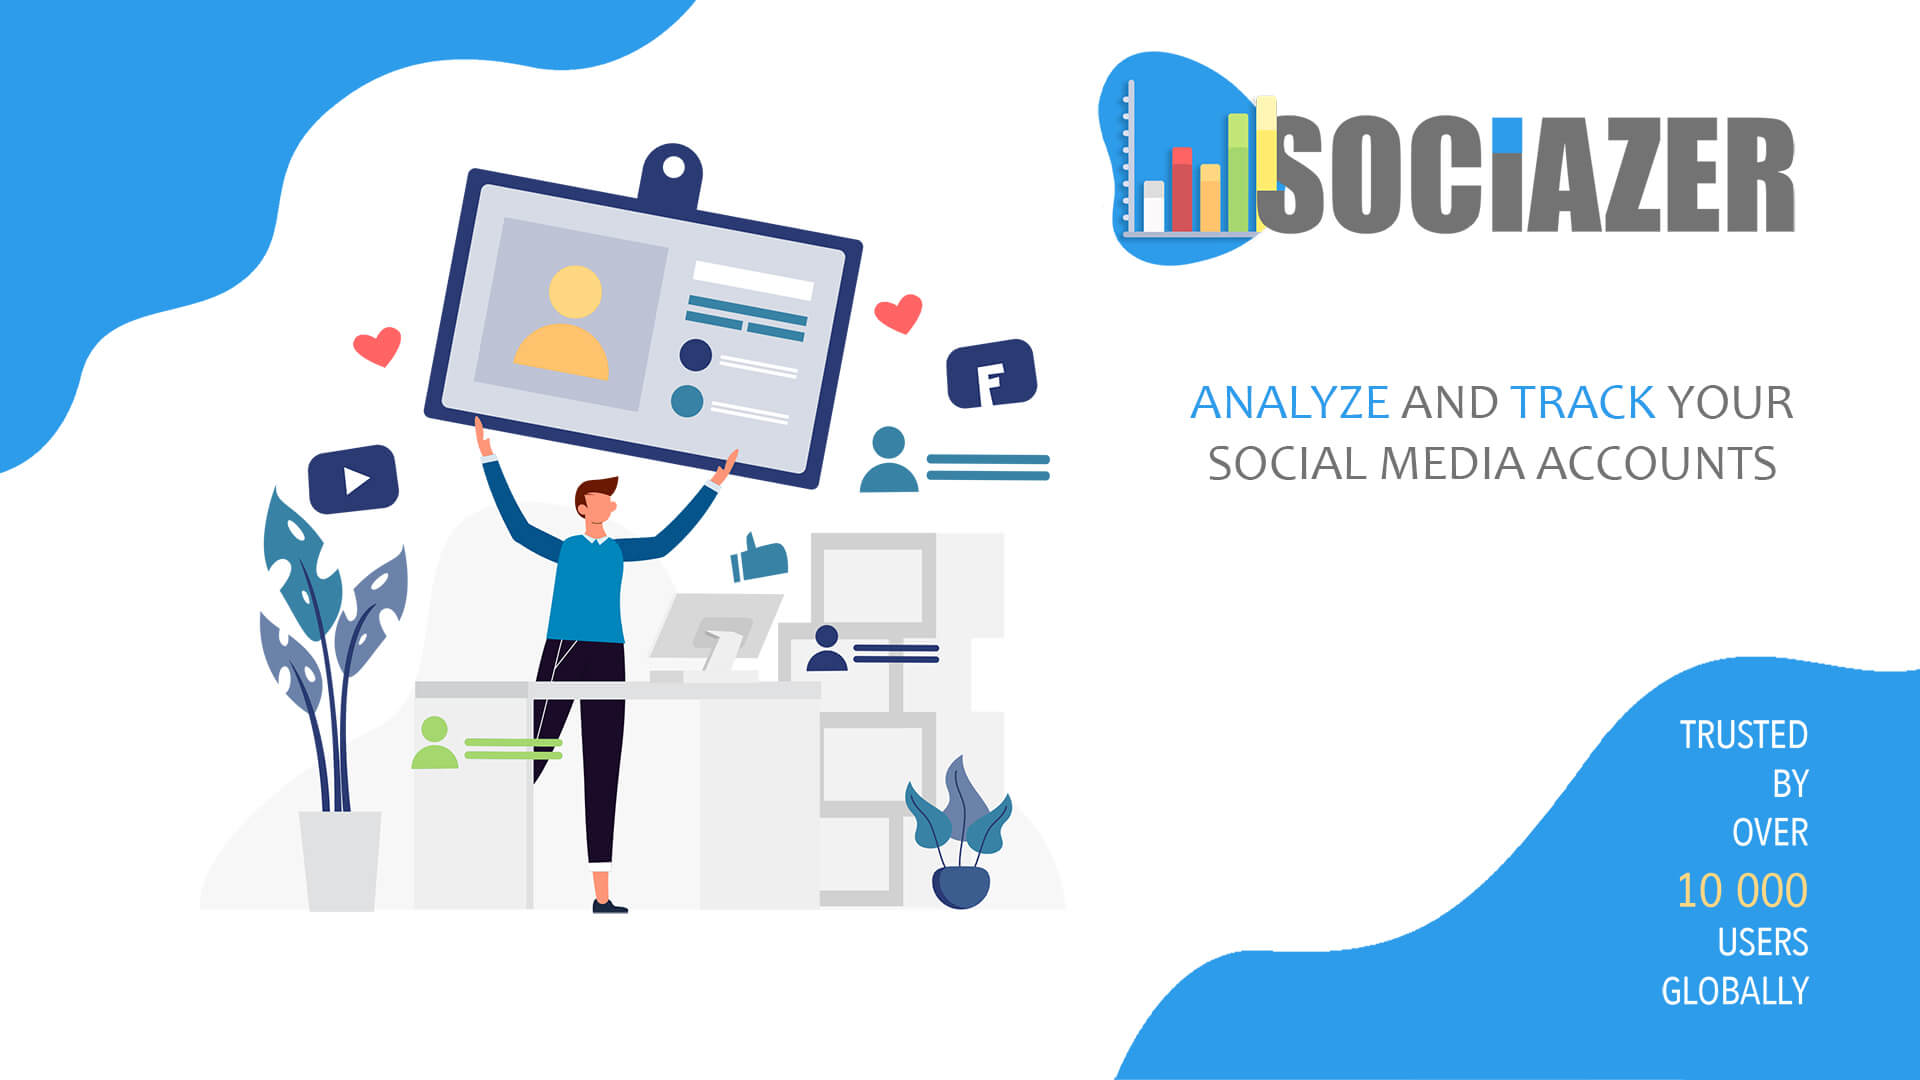 Sociazer Social Analysing & Tracking Tool - HERO Image 2